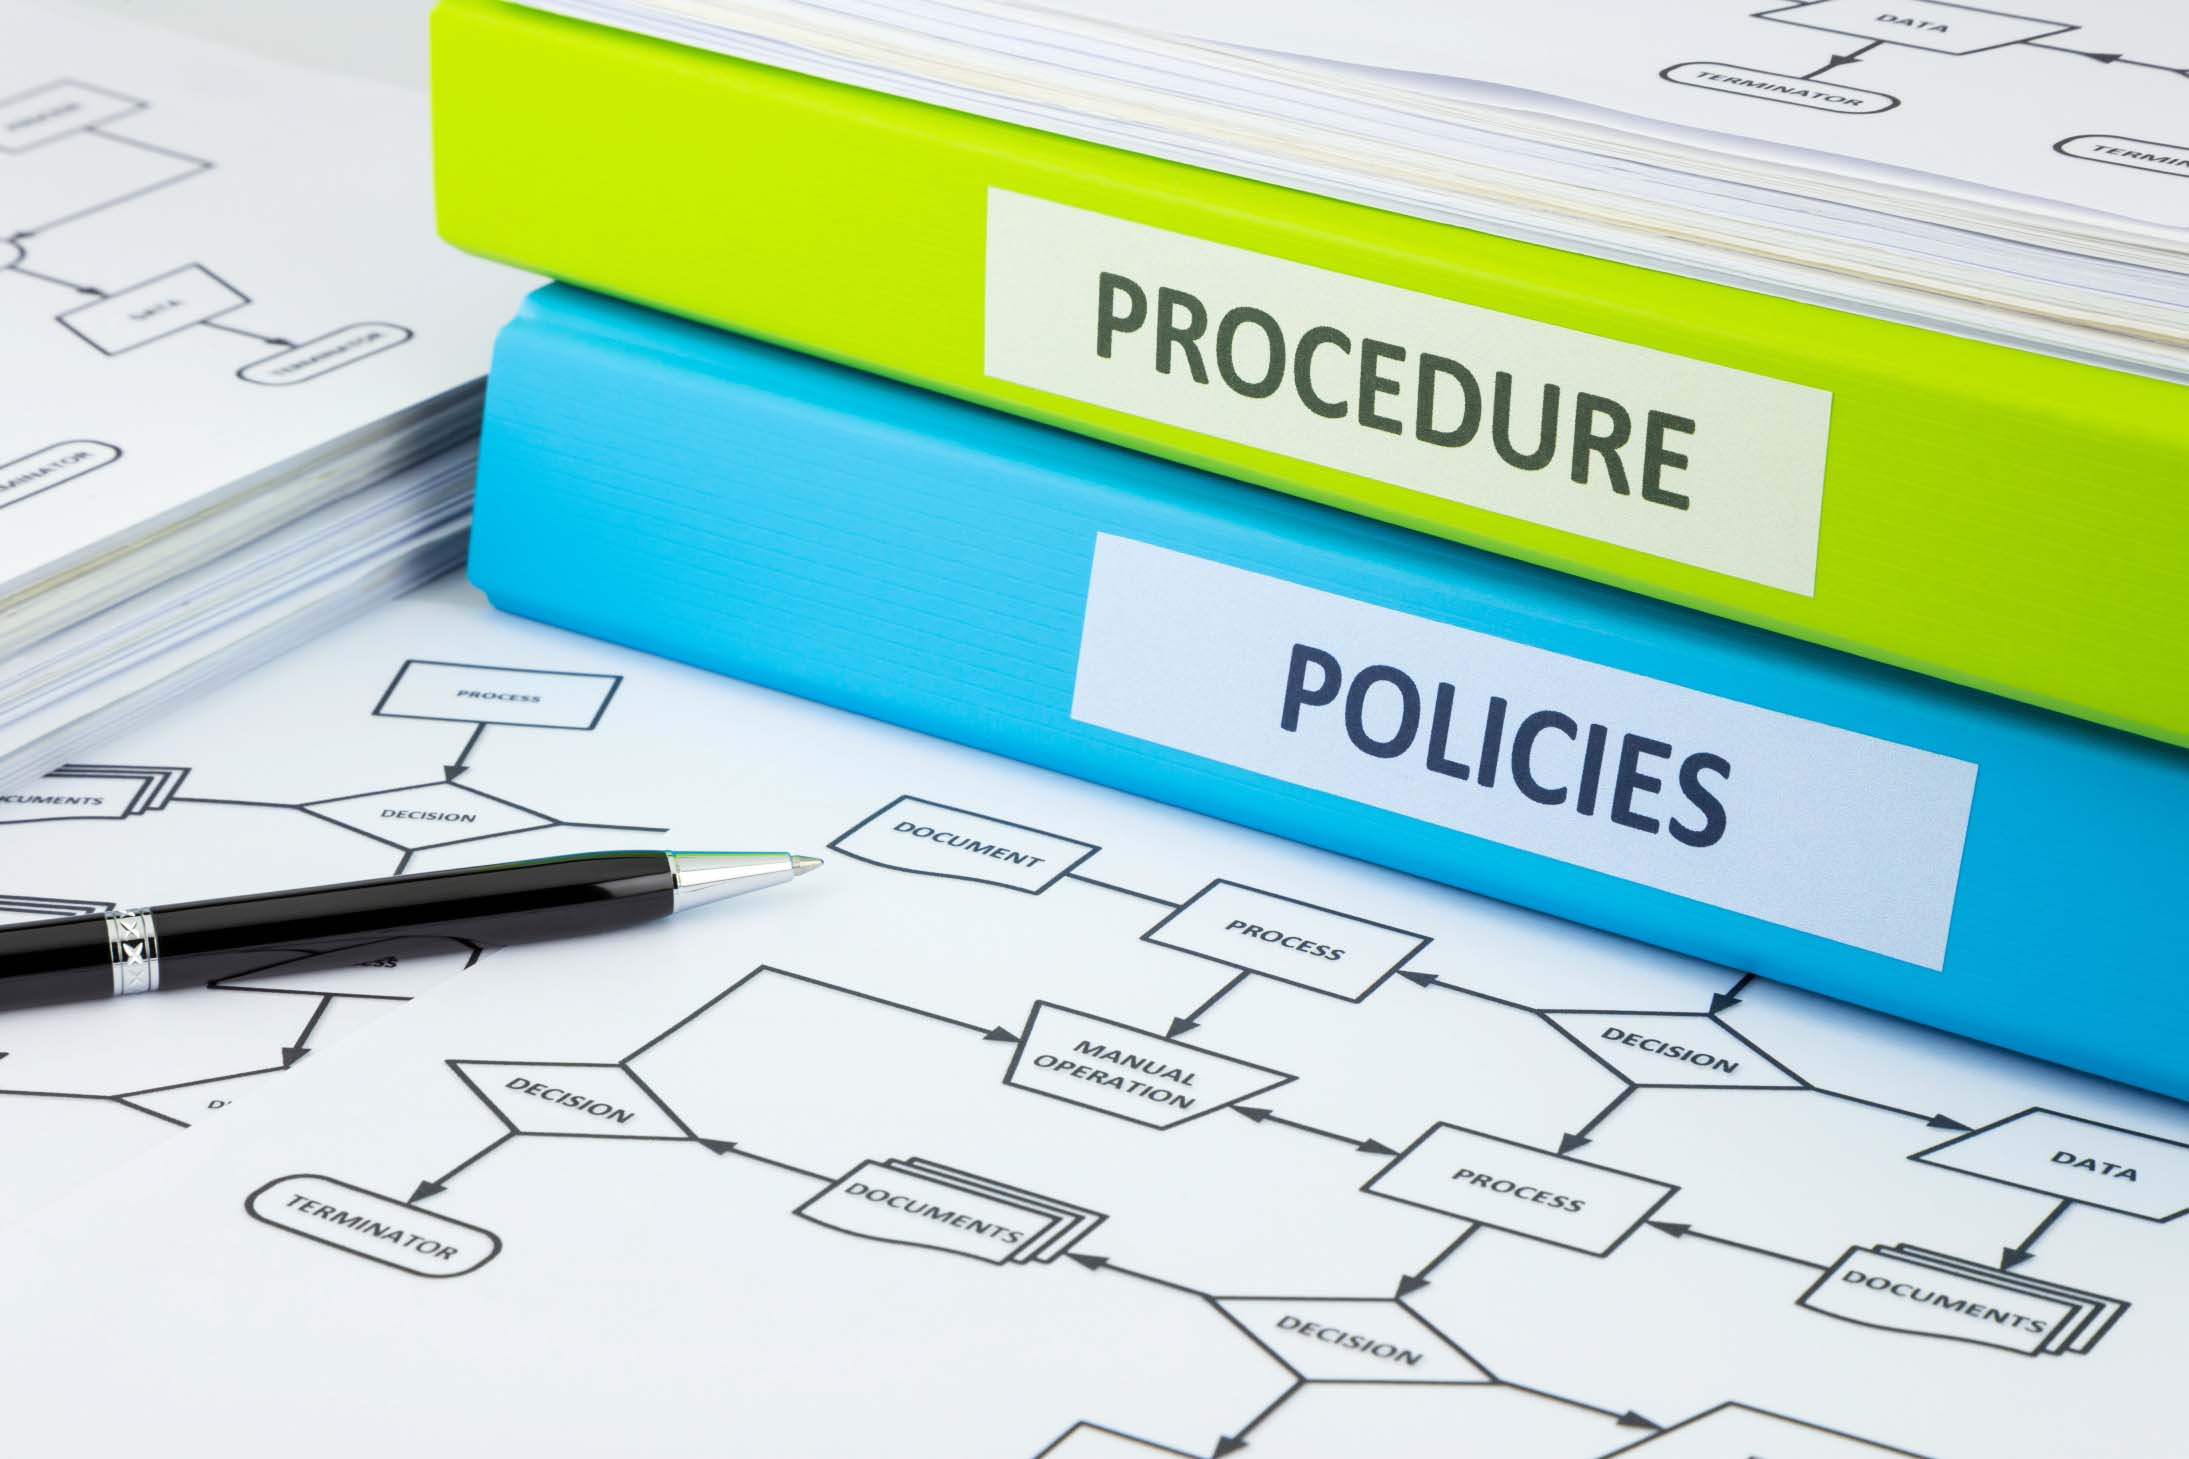 88856d449e Policies and Procedures Management - yes4consulting